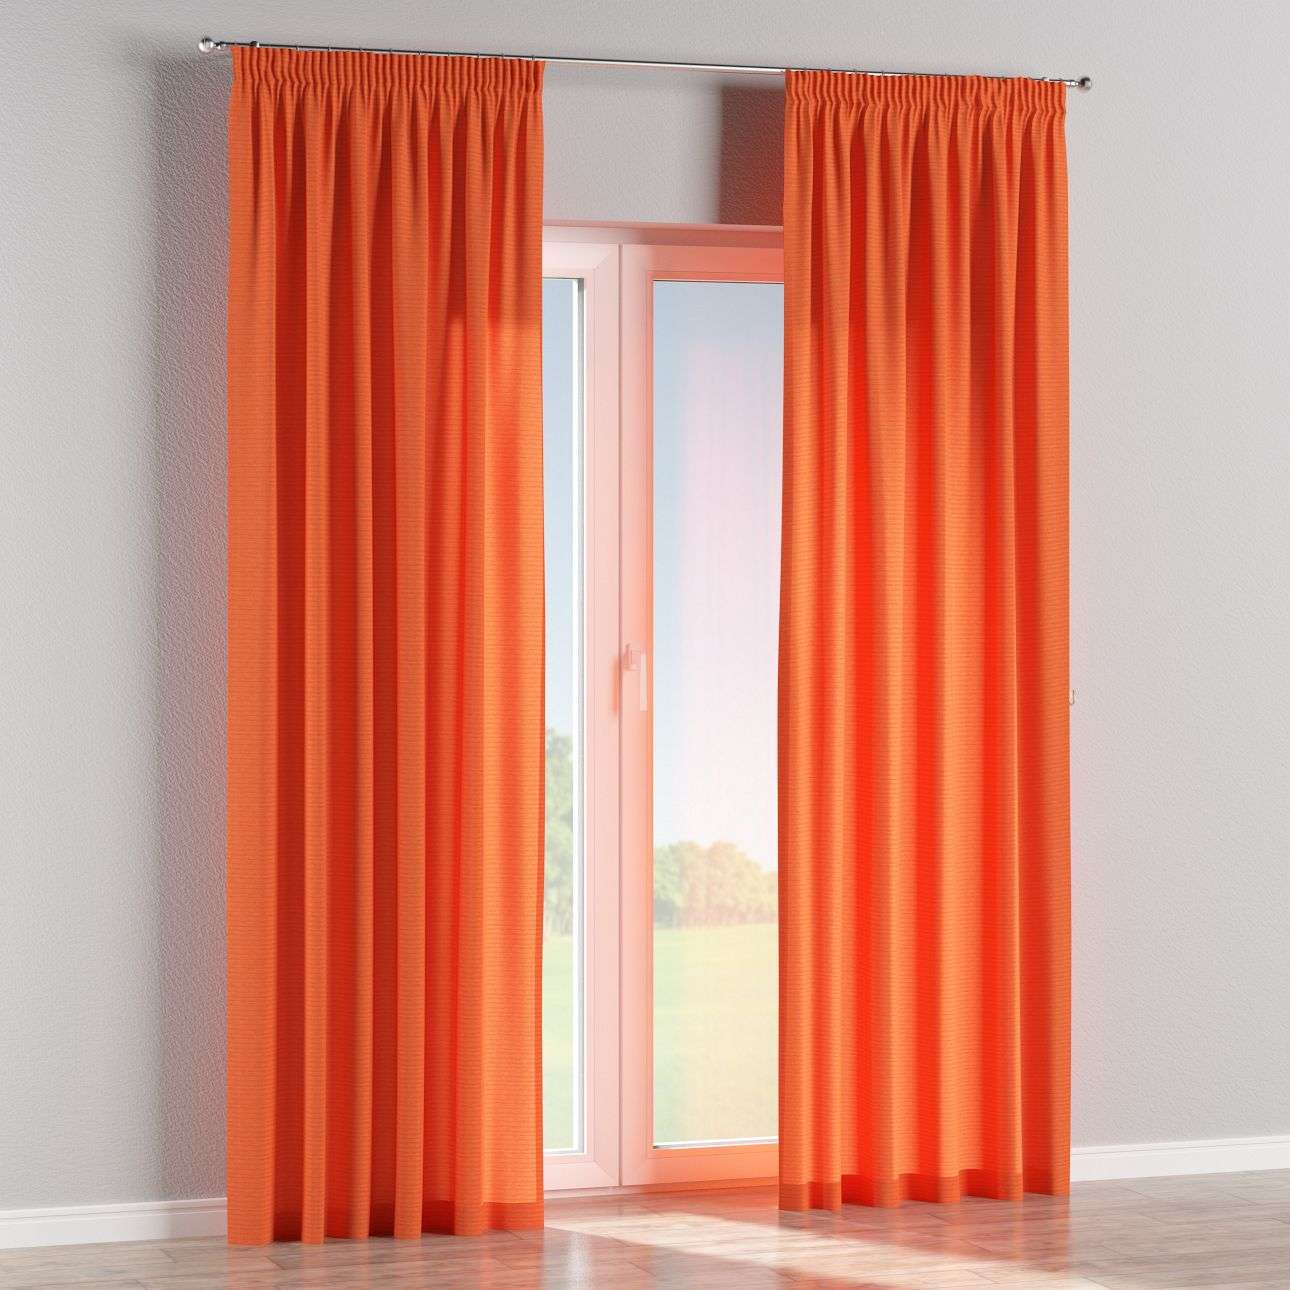 Pencil pleat curtains 130 x 260 cm (51 x 102 inch) in collection Jupiter, fabric: 127-35